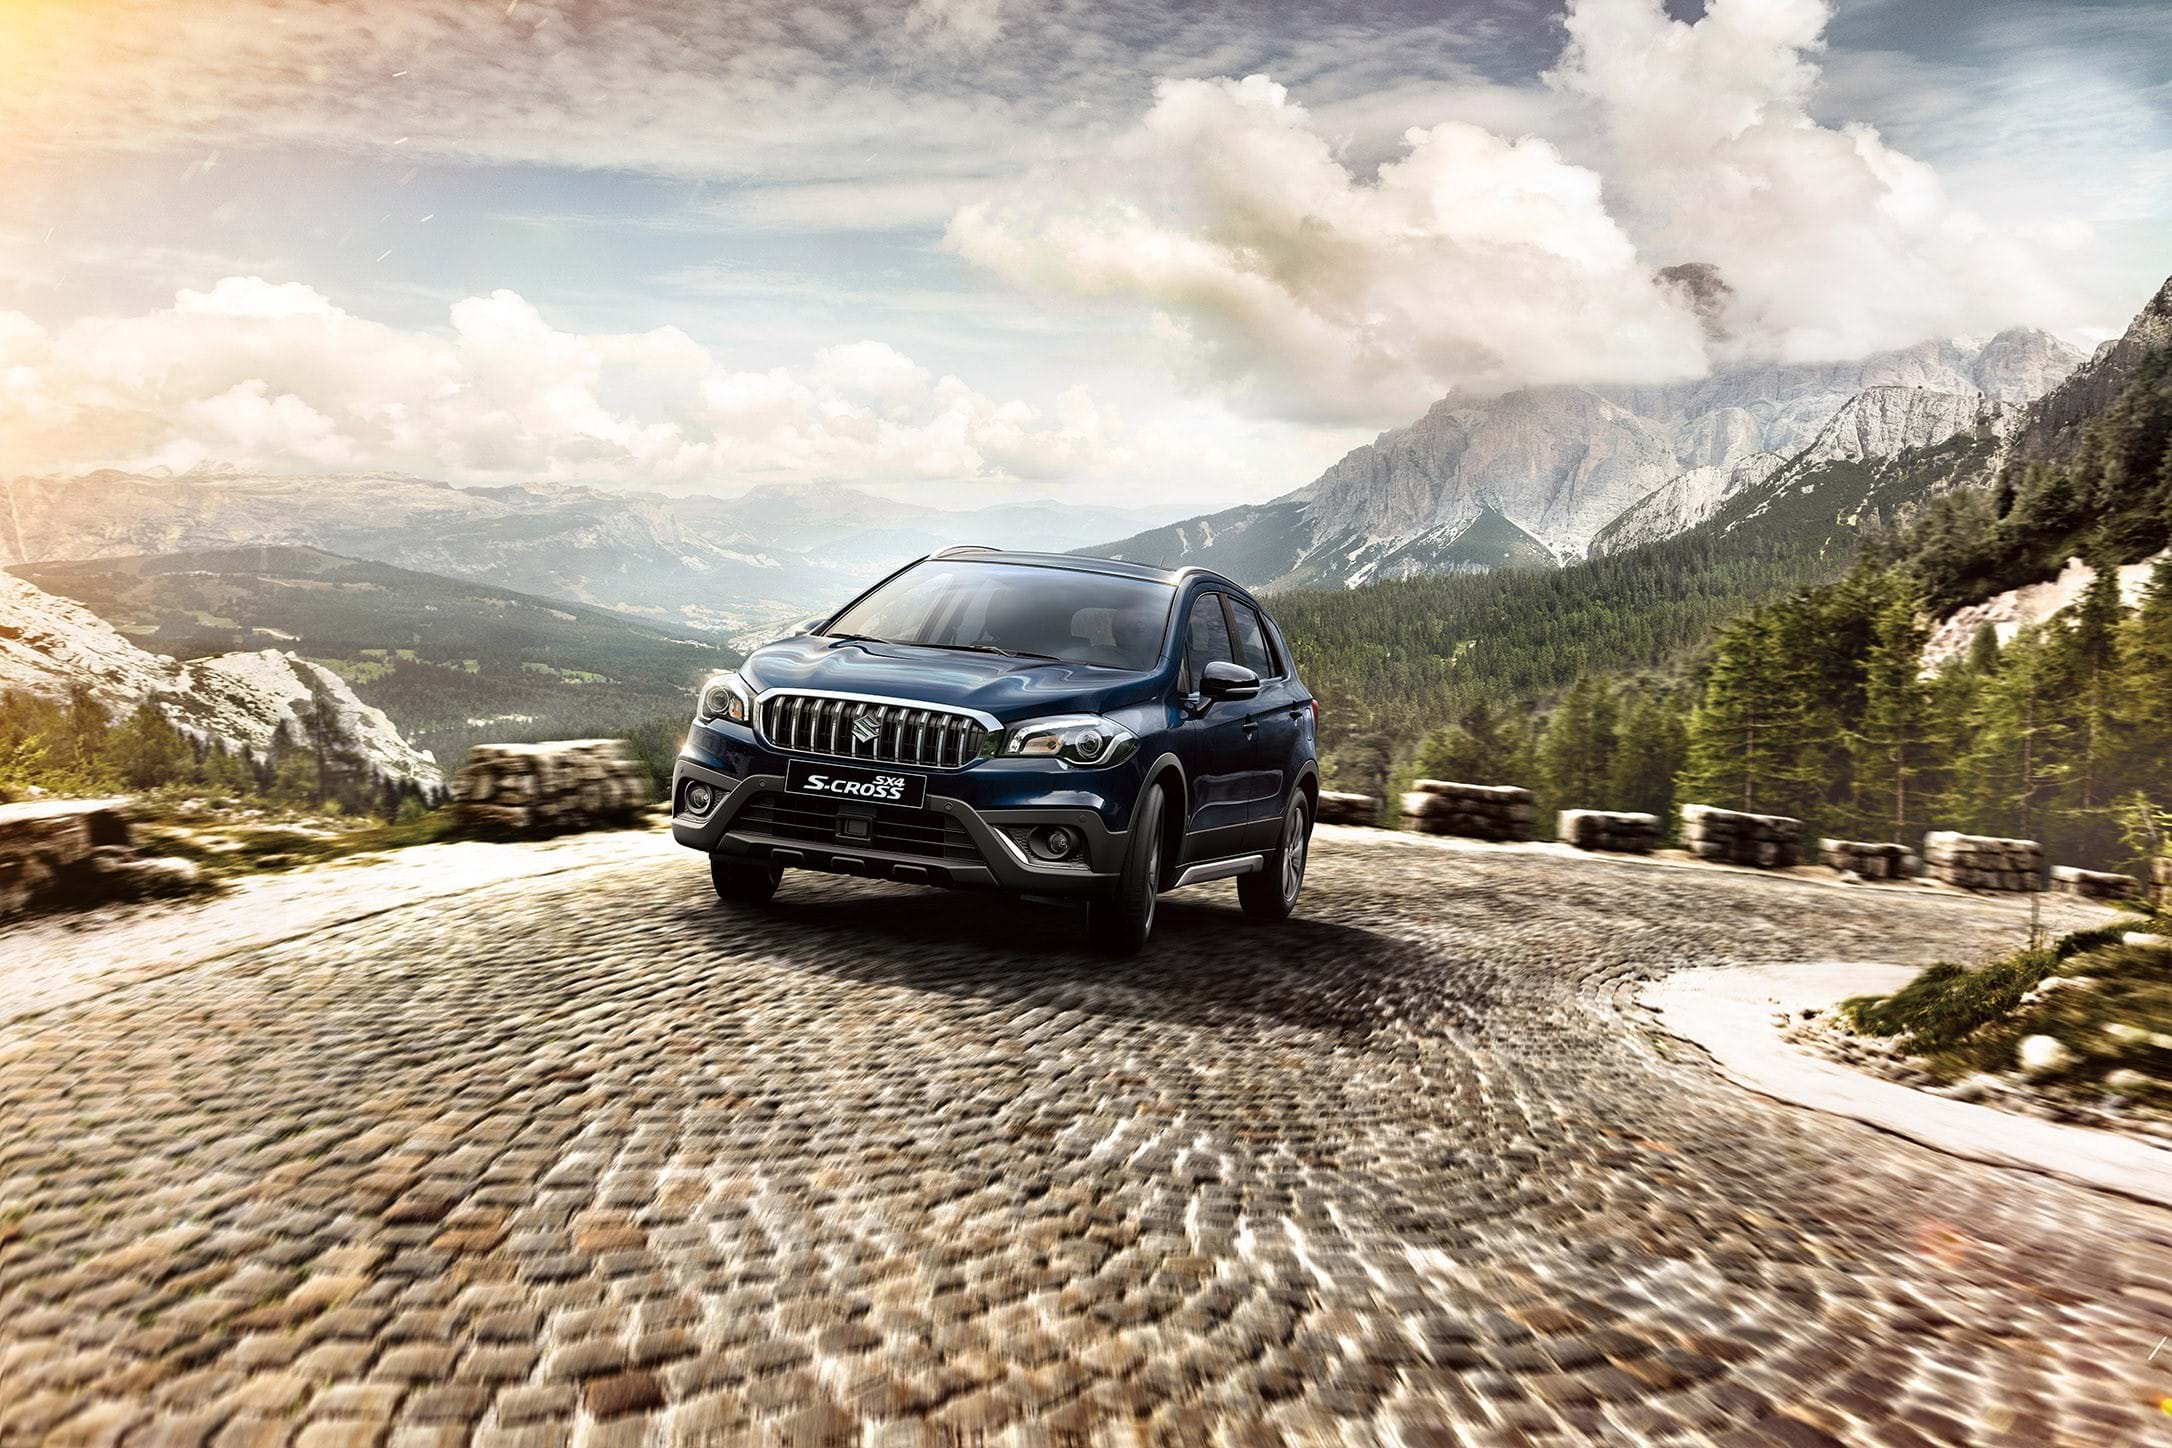 Suzuki S-Cross driving up cobbled road in the mountains